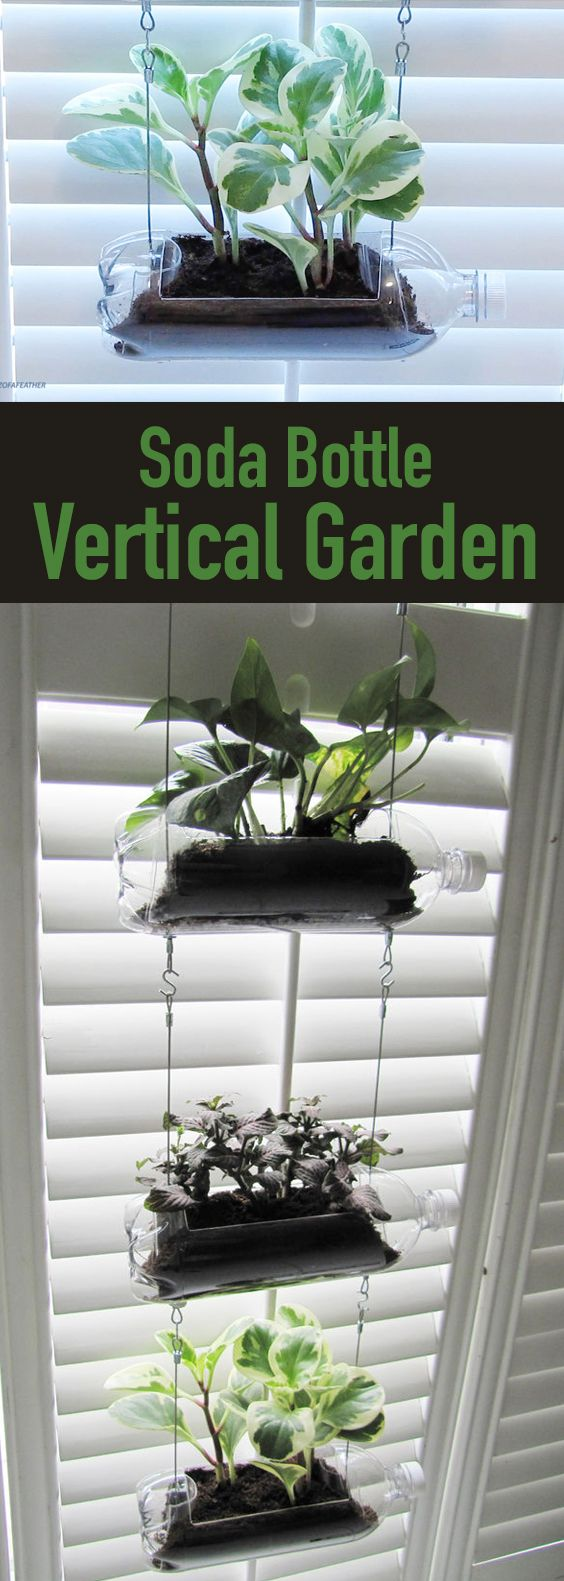 Learn how to create a vertical garden by turning plastic bottles into a hanging planter. Plastic bottle crafts | plastic bottle crafts DIY | plastic bottle planter | plastic bottle planters hanging | plastic bottle planters DIY | soda bottle crafts | plastic soda bottle crafts | diy soda bottle crafts | bottle crafts | bottle crafts DIY | plastic soda bottle crafts | upcycled bottles | upcycled bottles DIY | planters DIY | planter ideas | #plasticbottles #plasticbottlecrafts #planters #planterideas